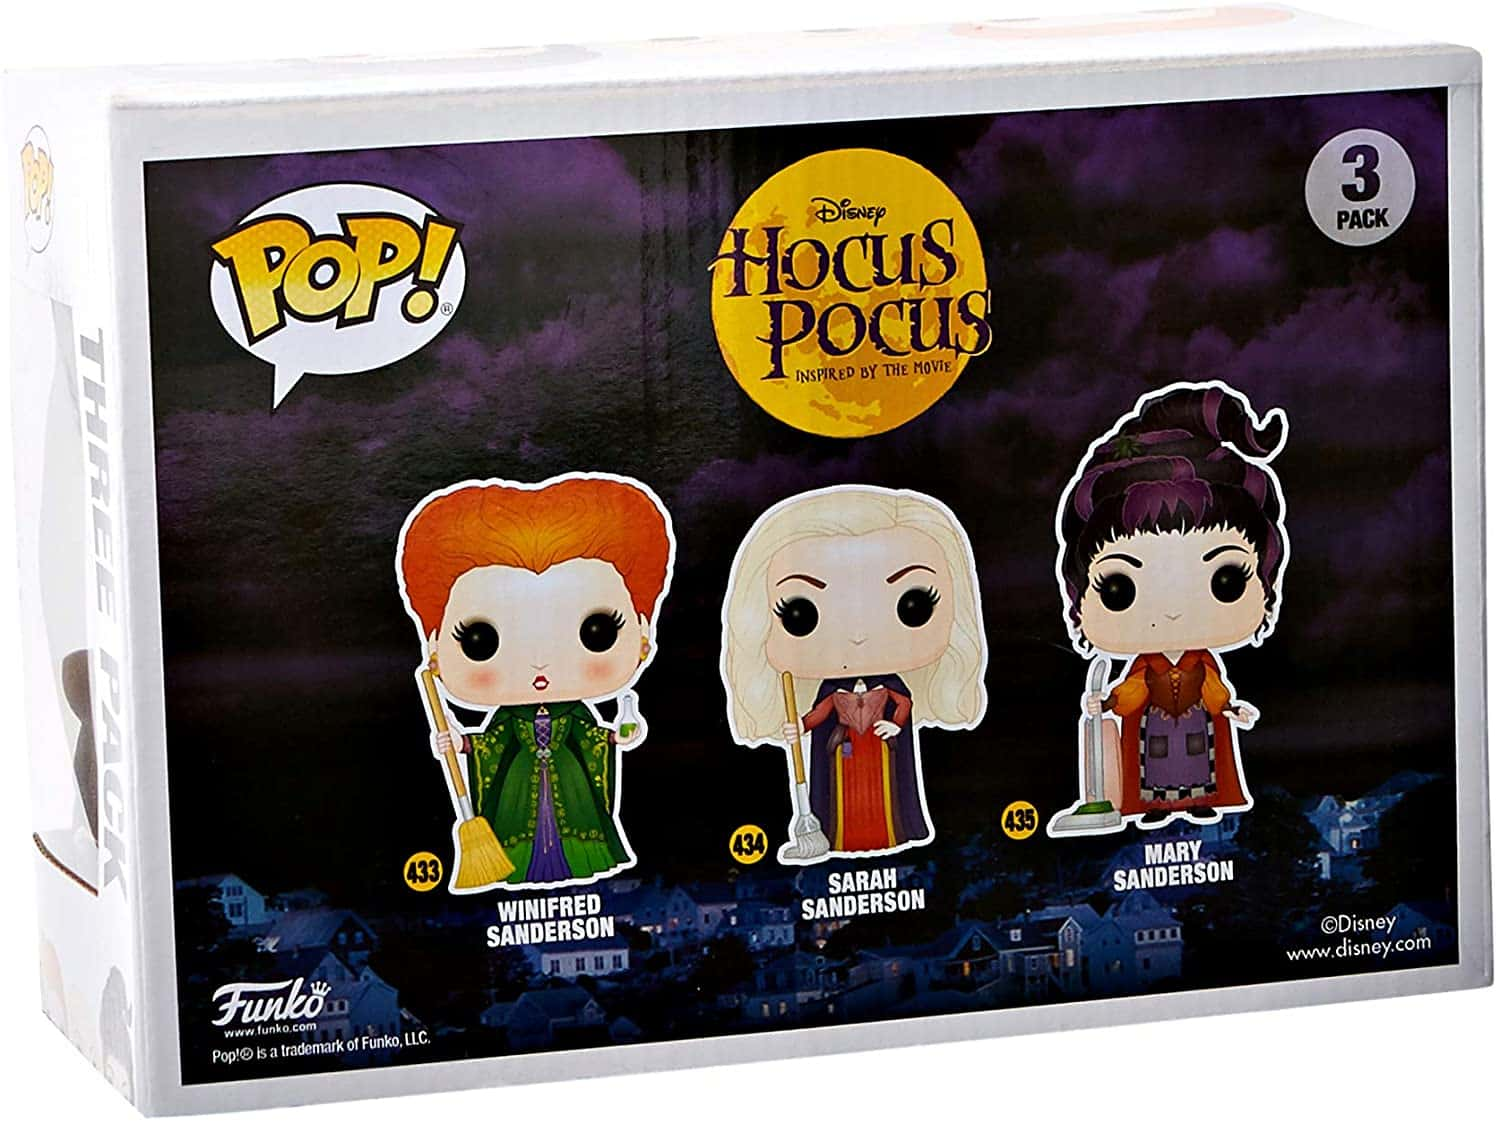 Mary Sanderson Flying Pop Hocus Pocus Vinyl-FUN49141-FUNKO